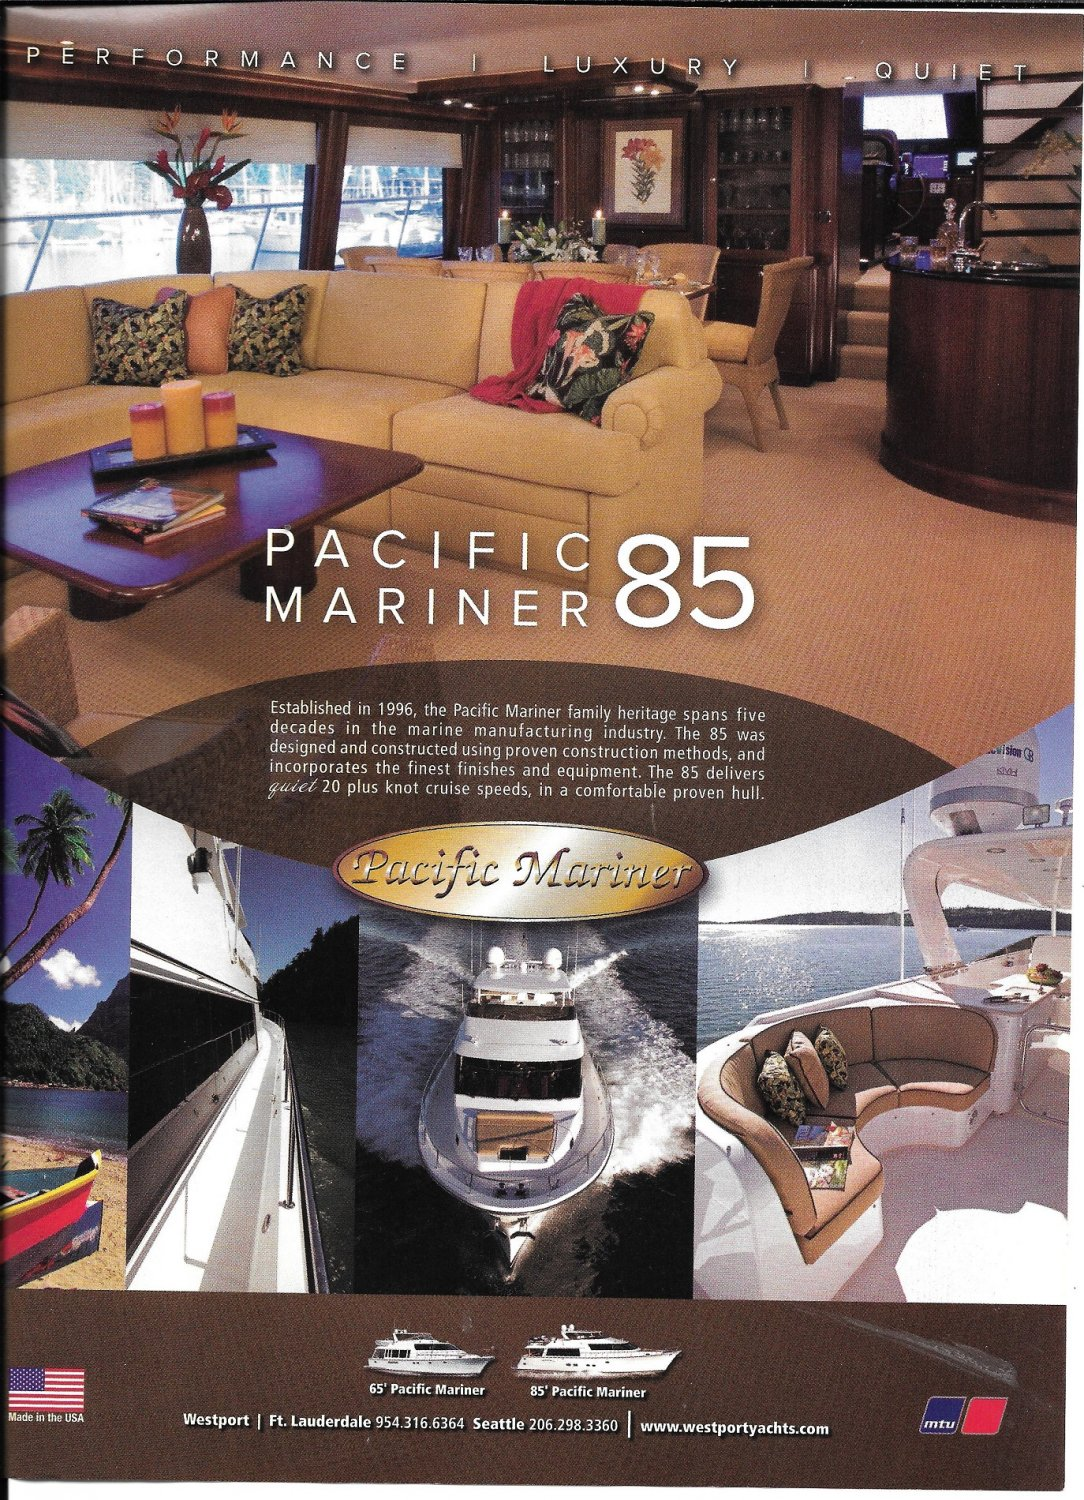 2007 Pacific Mariner 85 Yacht Color Ad- Nice Photos